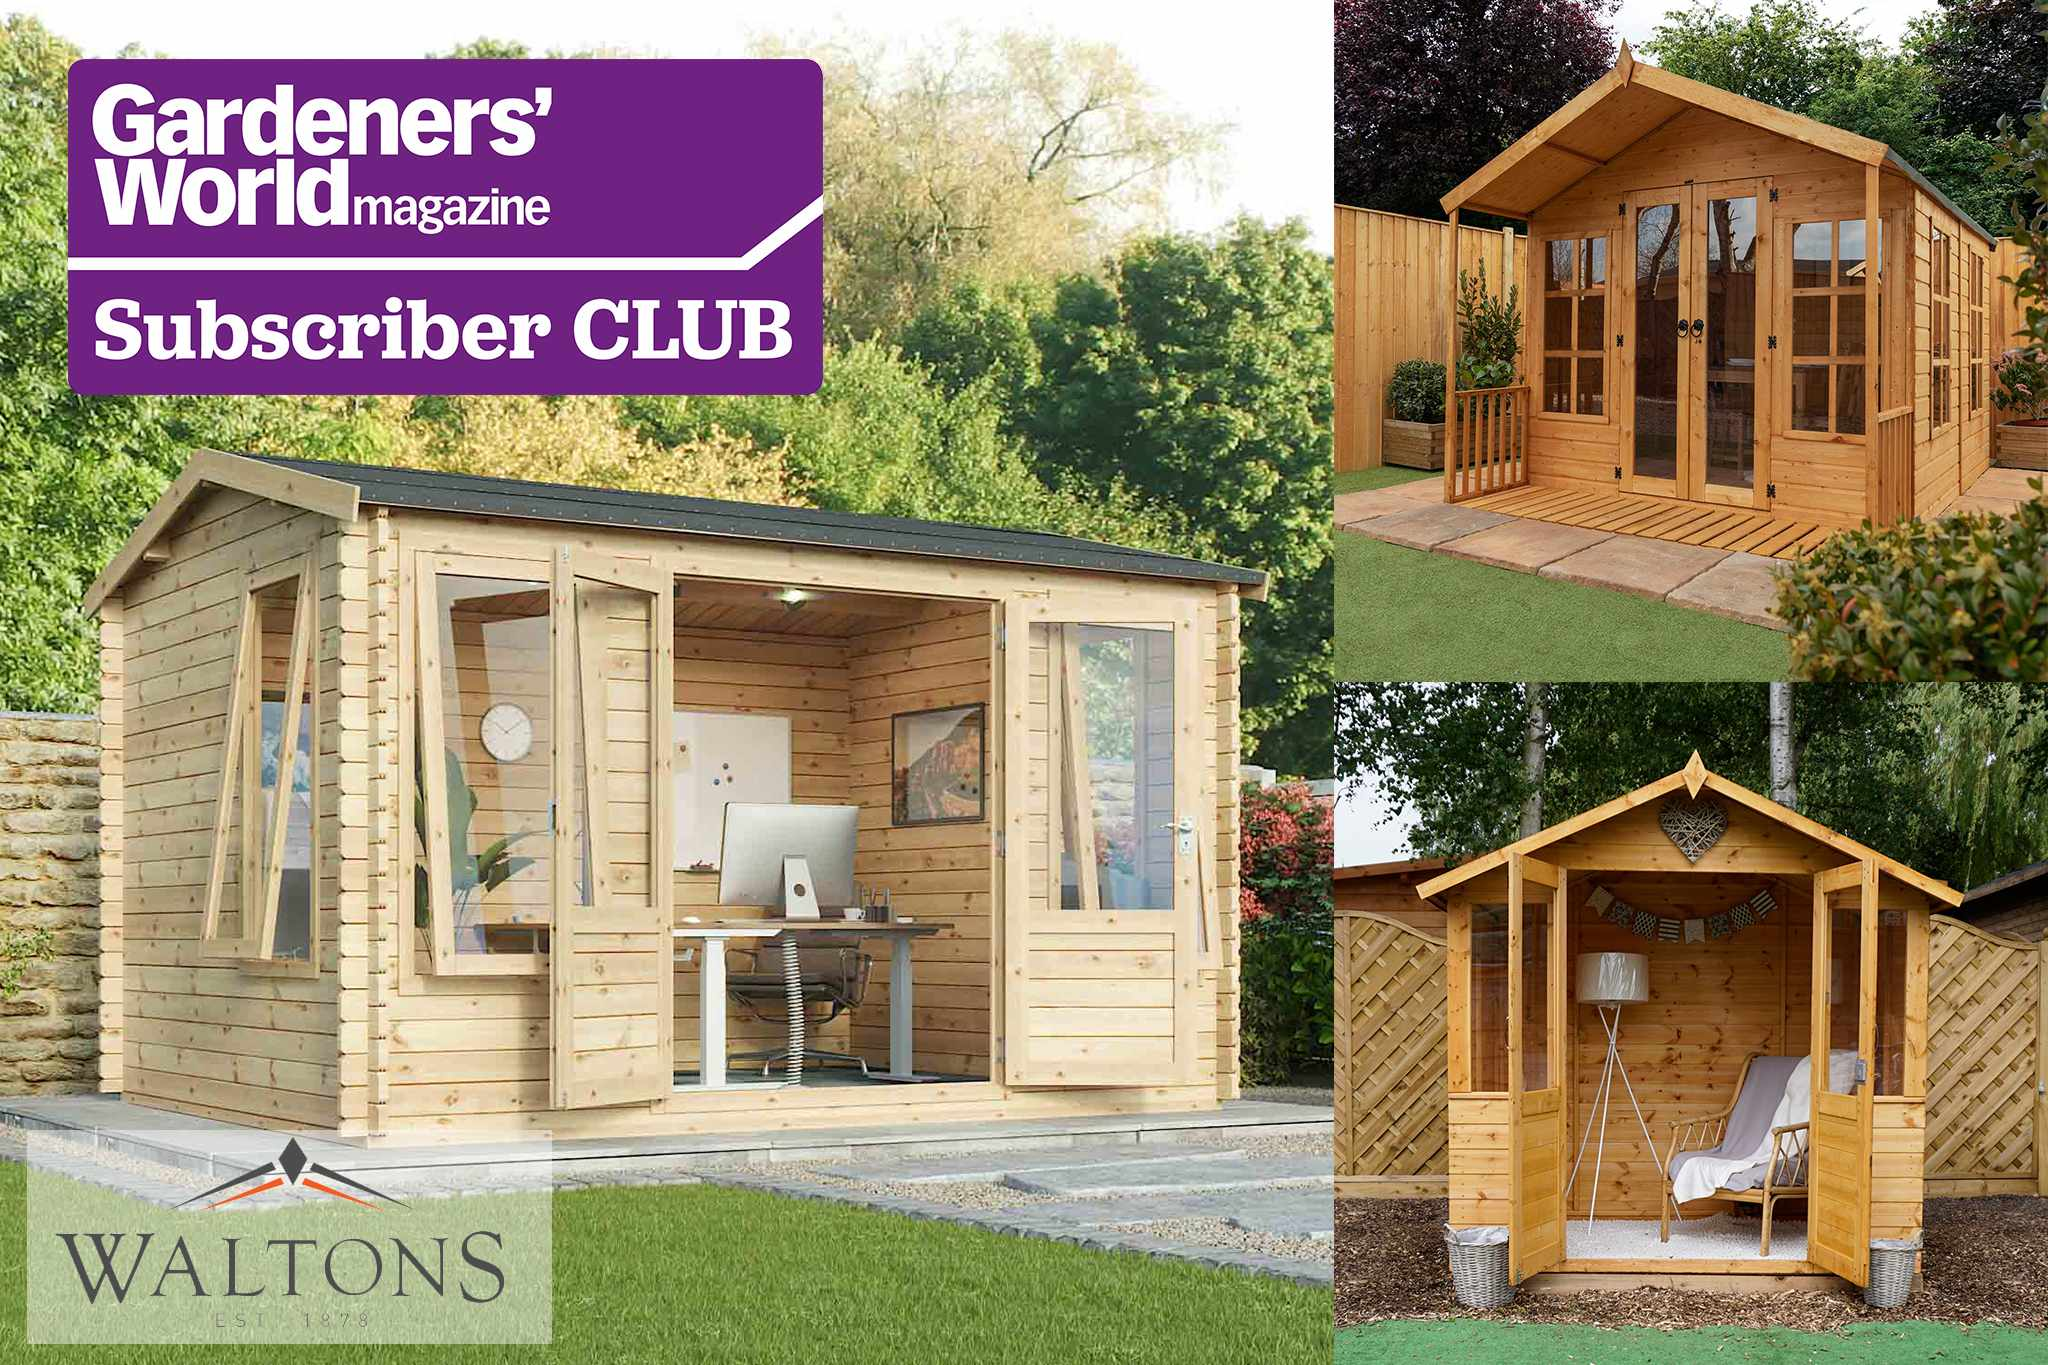 Subscriber Club competition: win one of three Waltons summerhouses